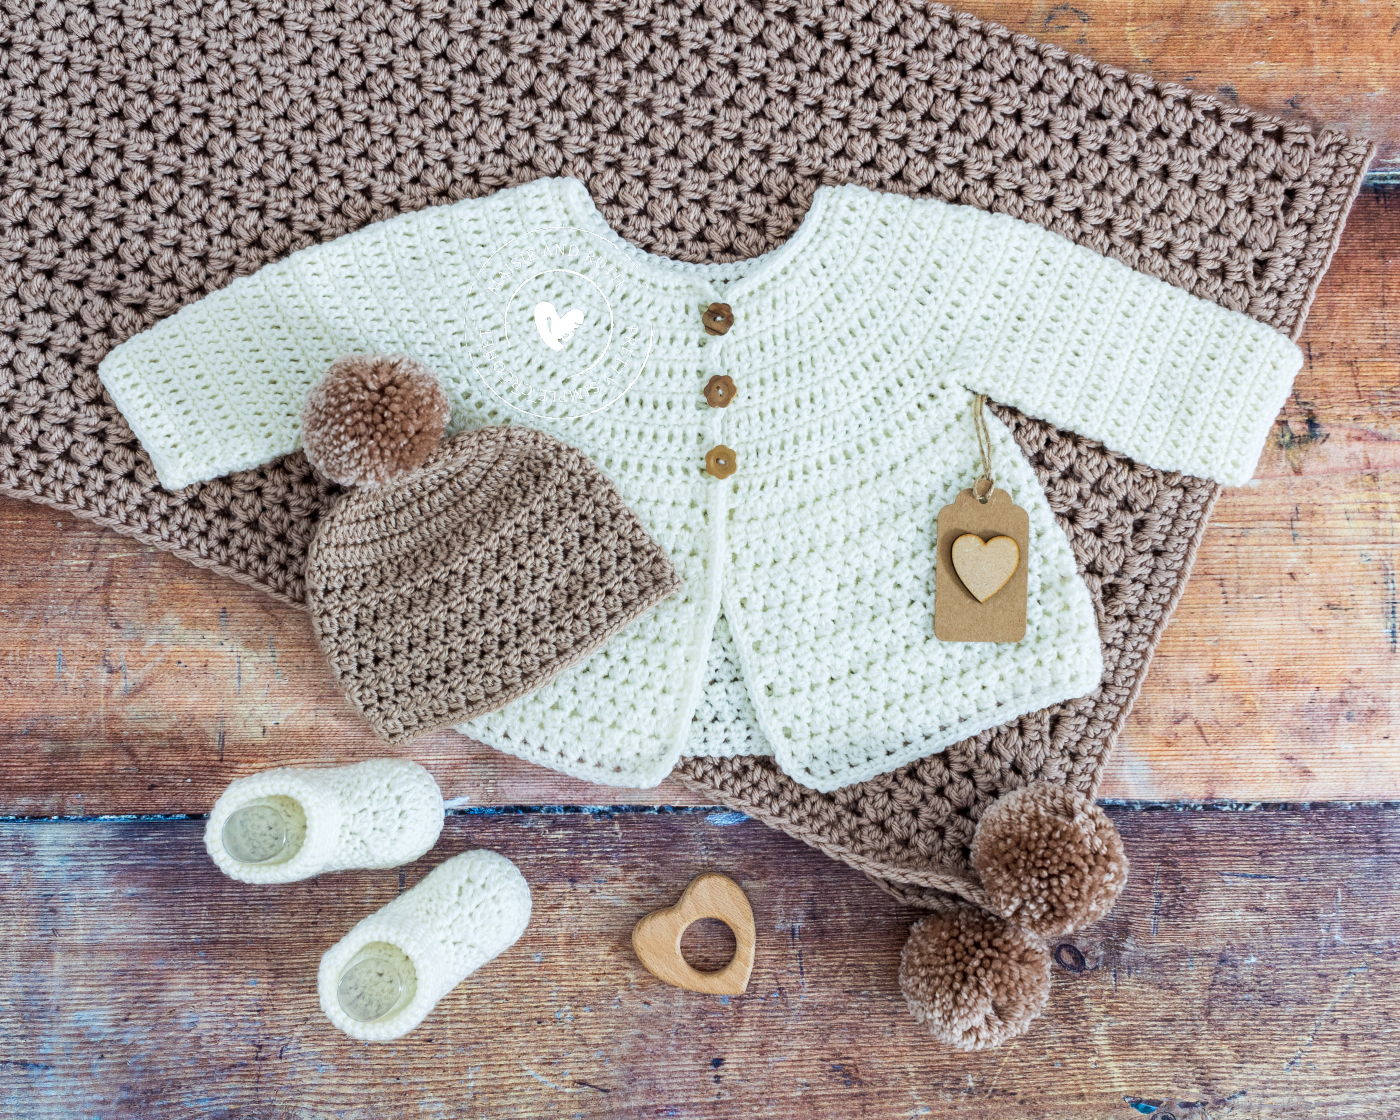 Crochet Baby Cardigan Pattern with blanket and other items